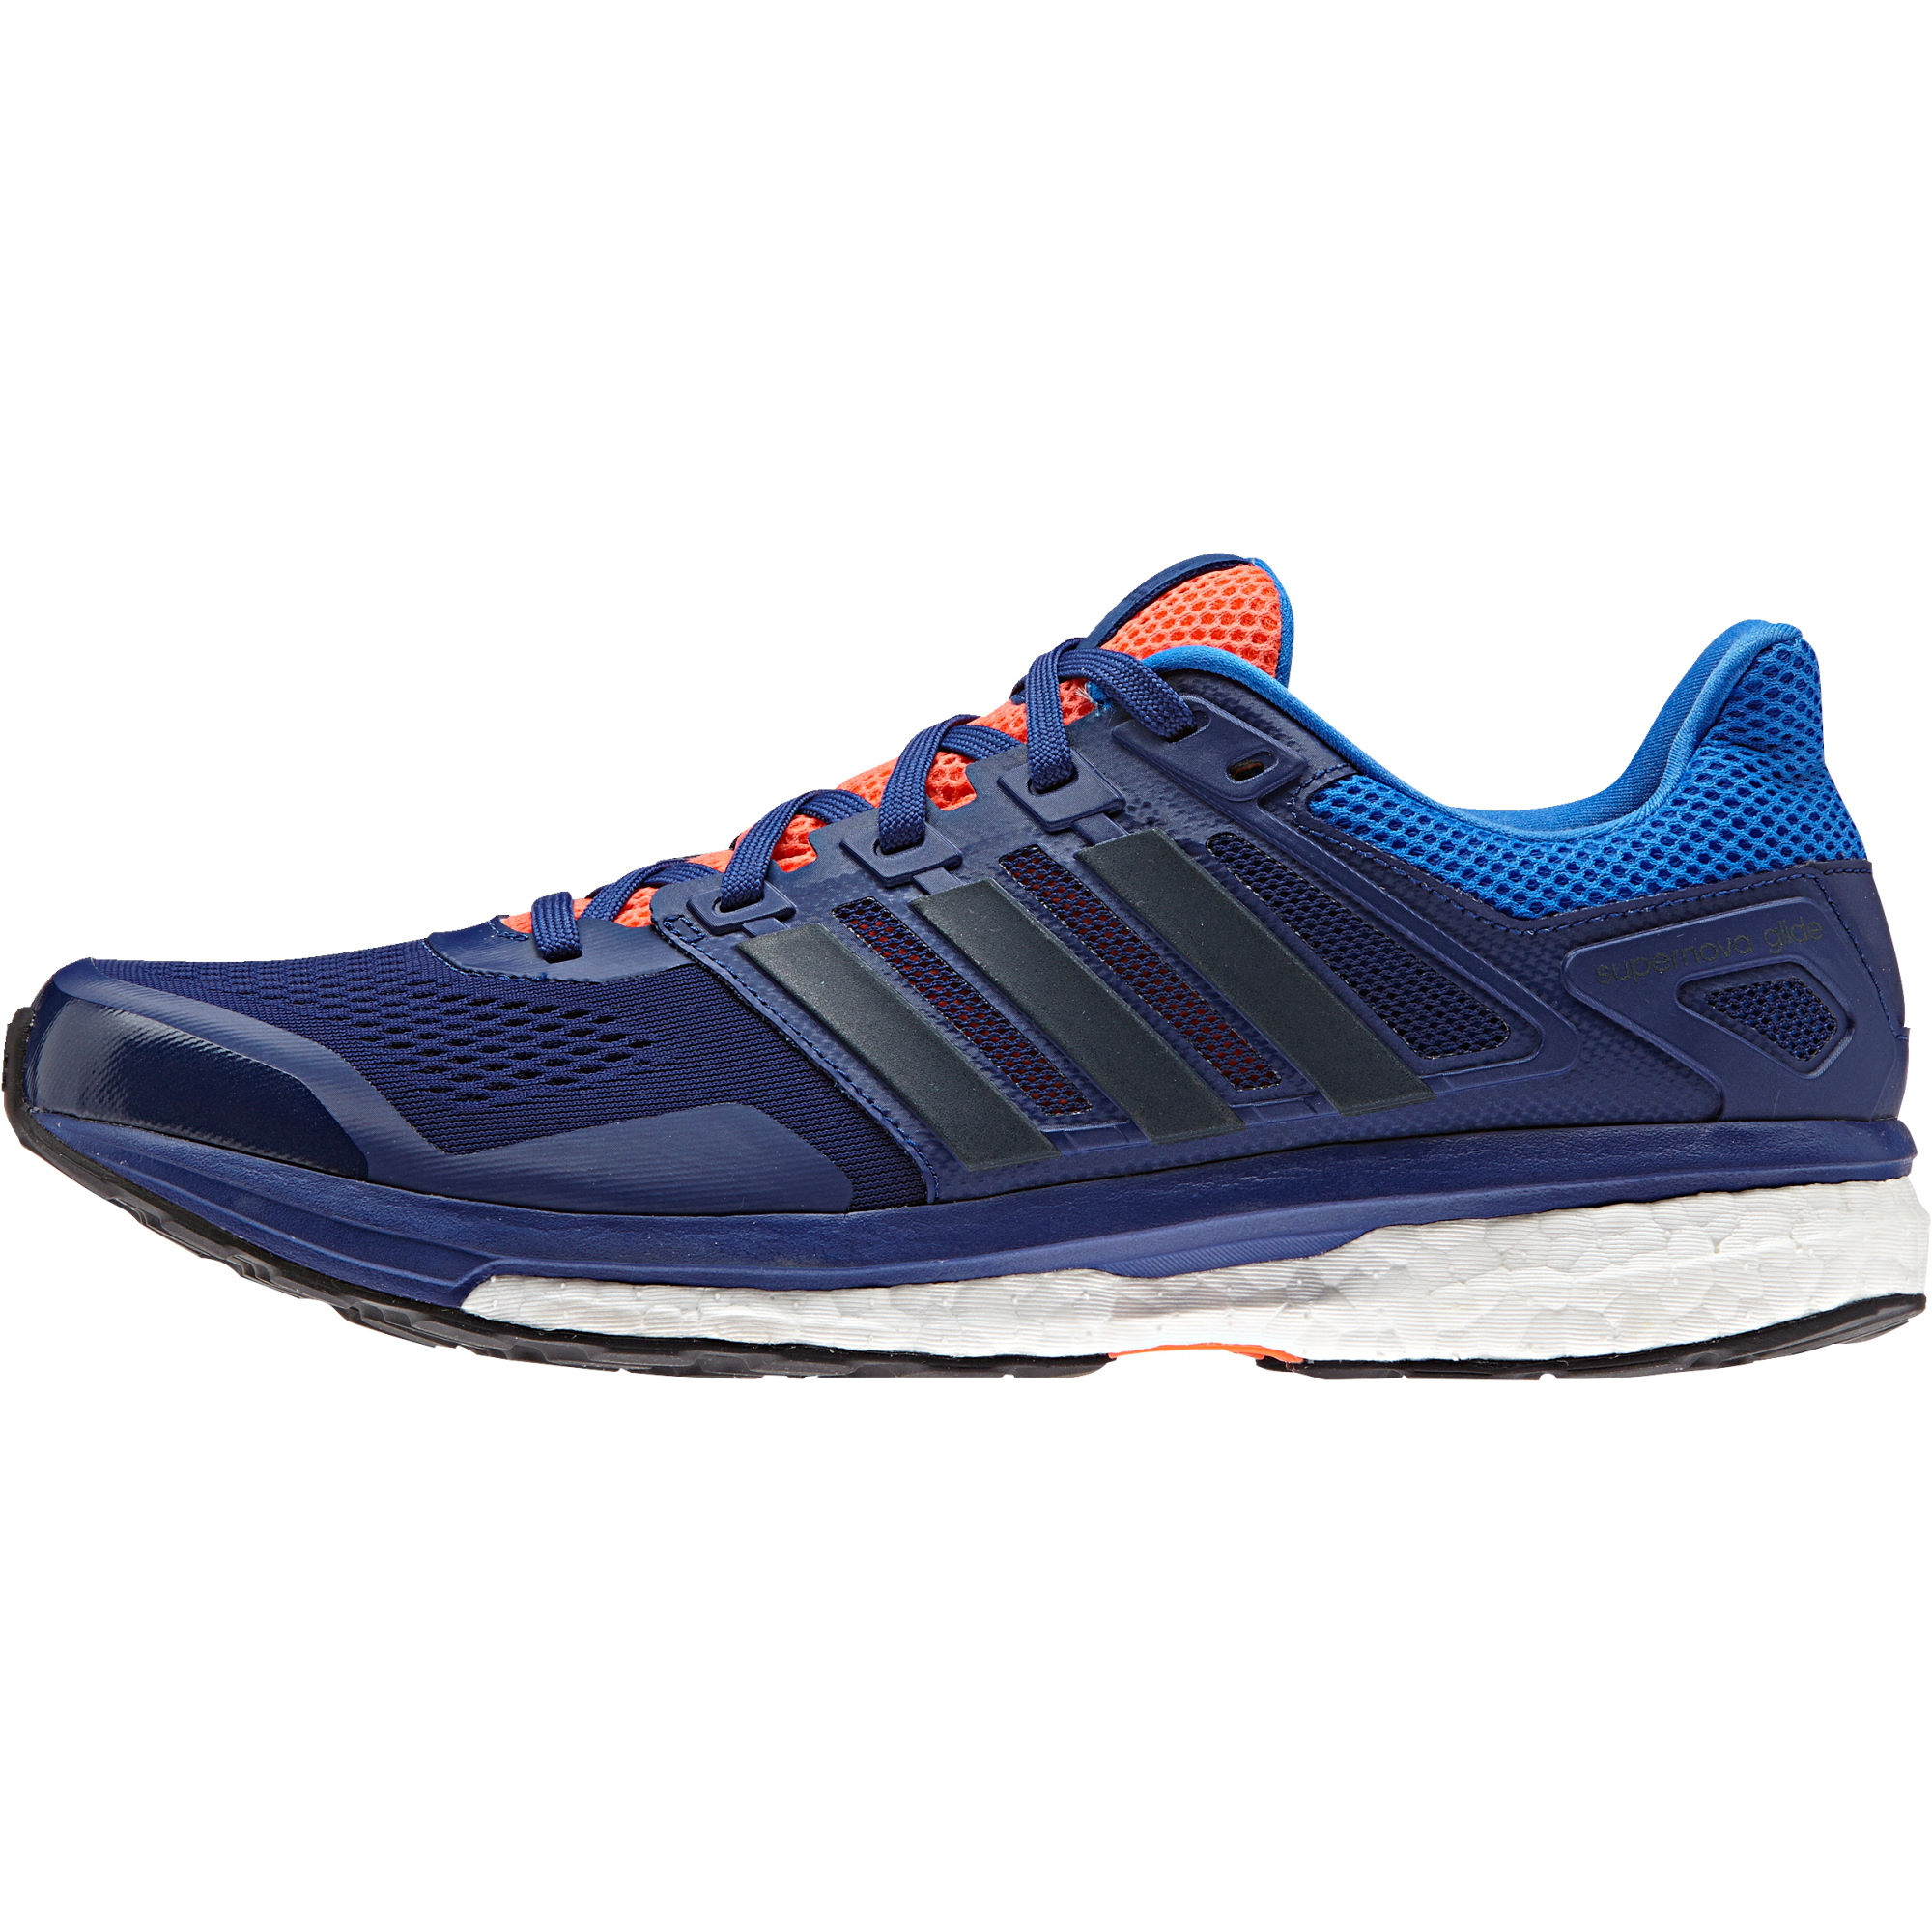 Royaume-Uni disponibilité b95cf 709c2 Wiggle Cycle To Work | adidas Supernova Glide Boost 8 Shoes ...